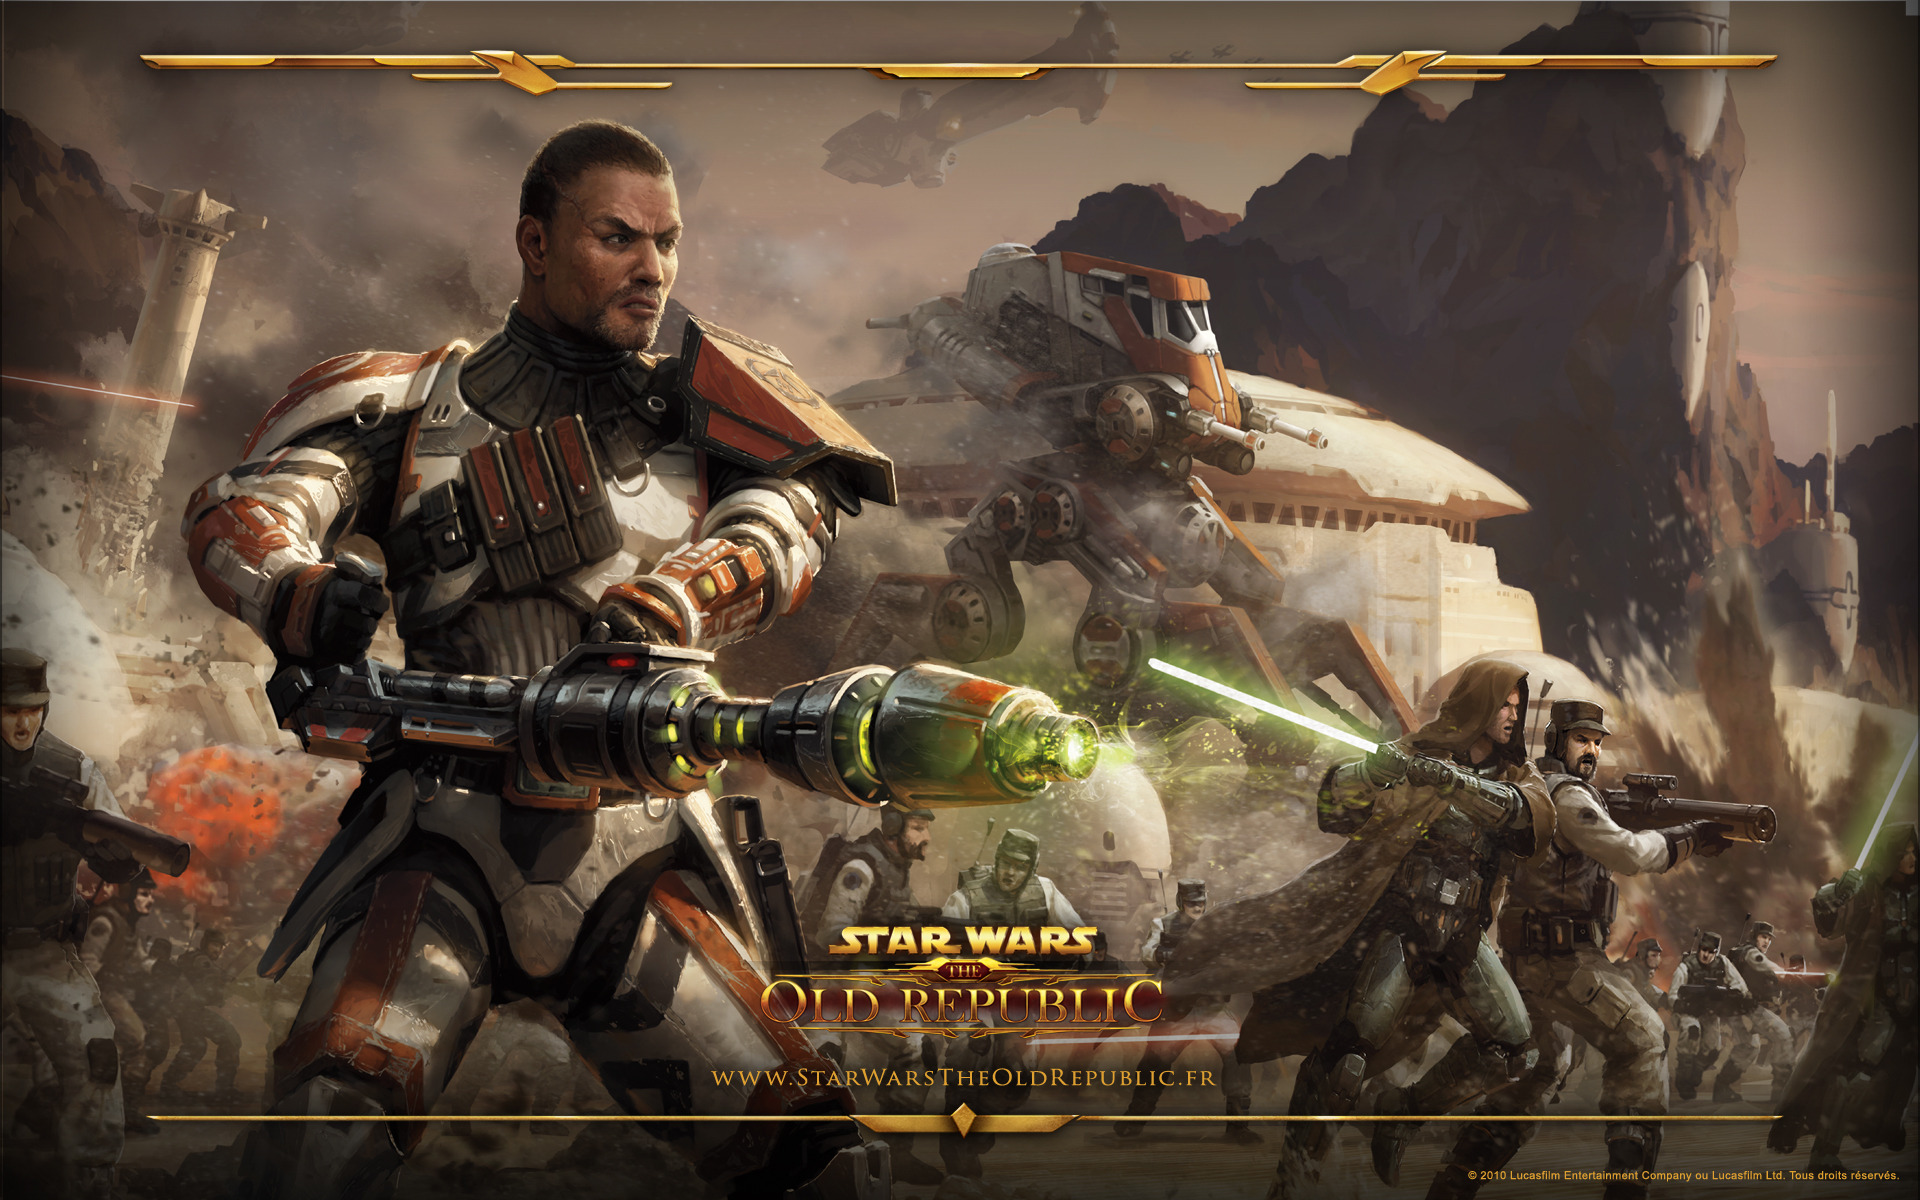 Star wars star wars the old republic